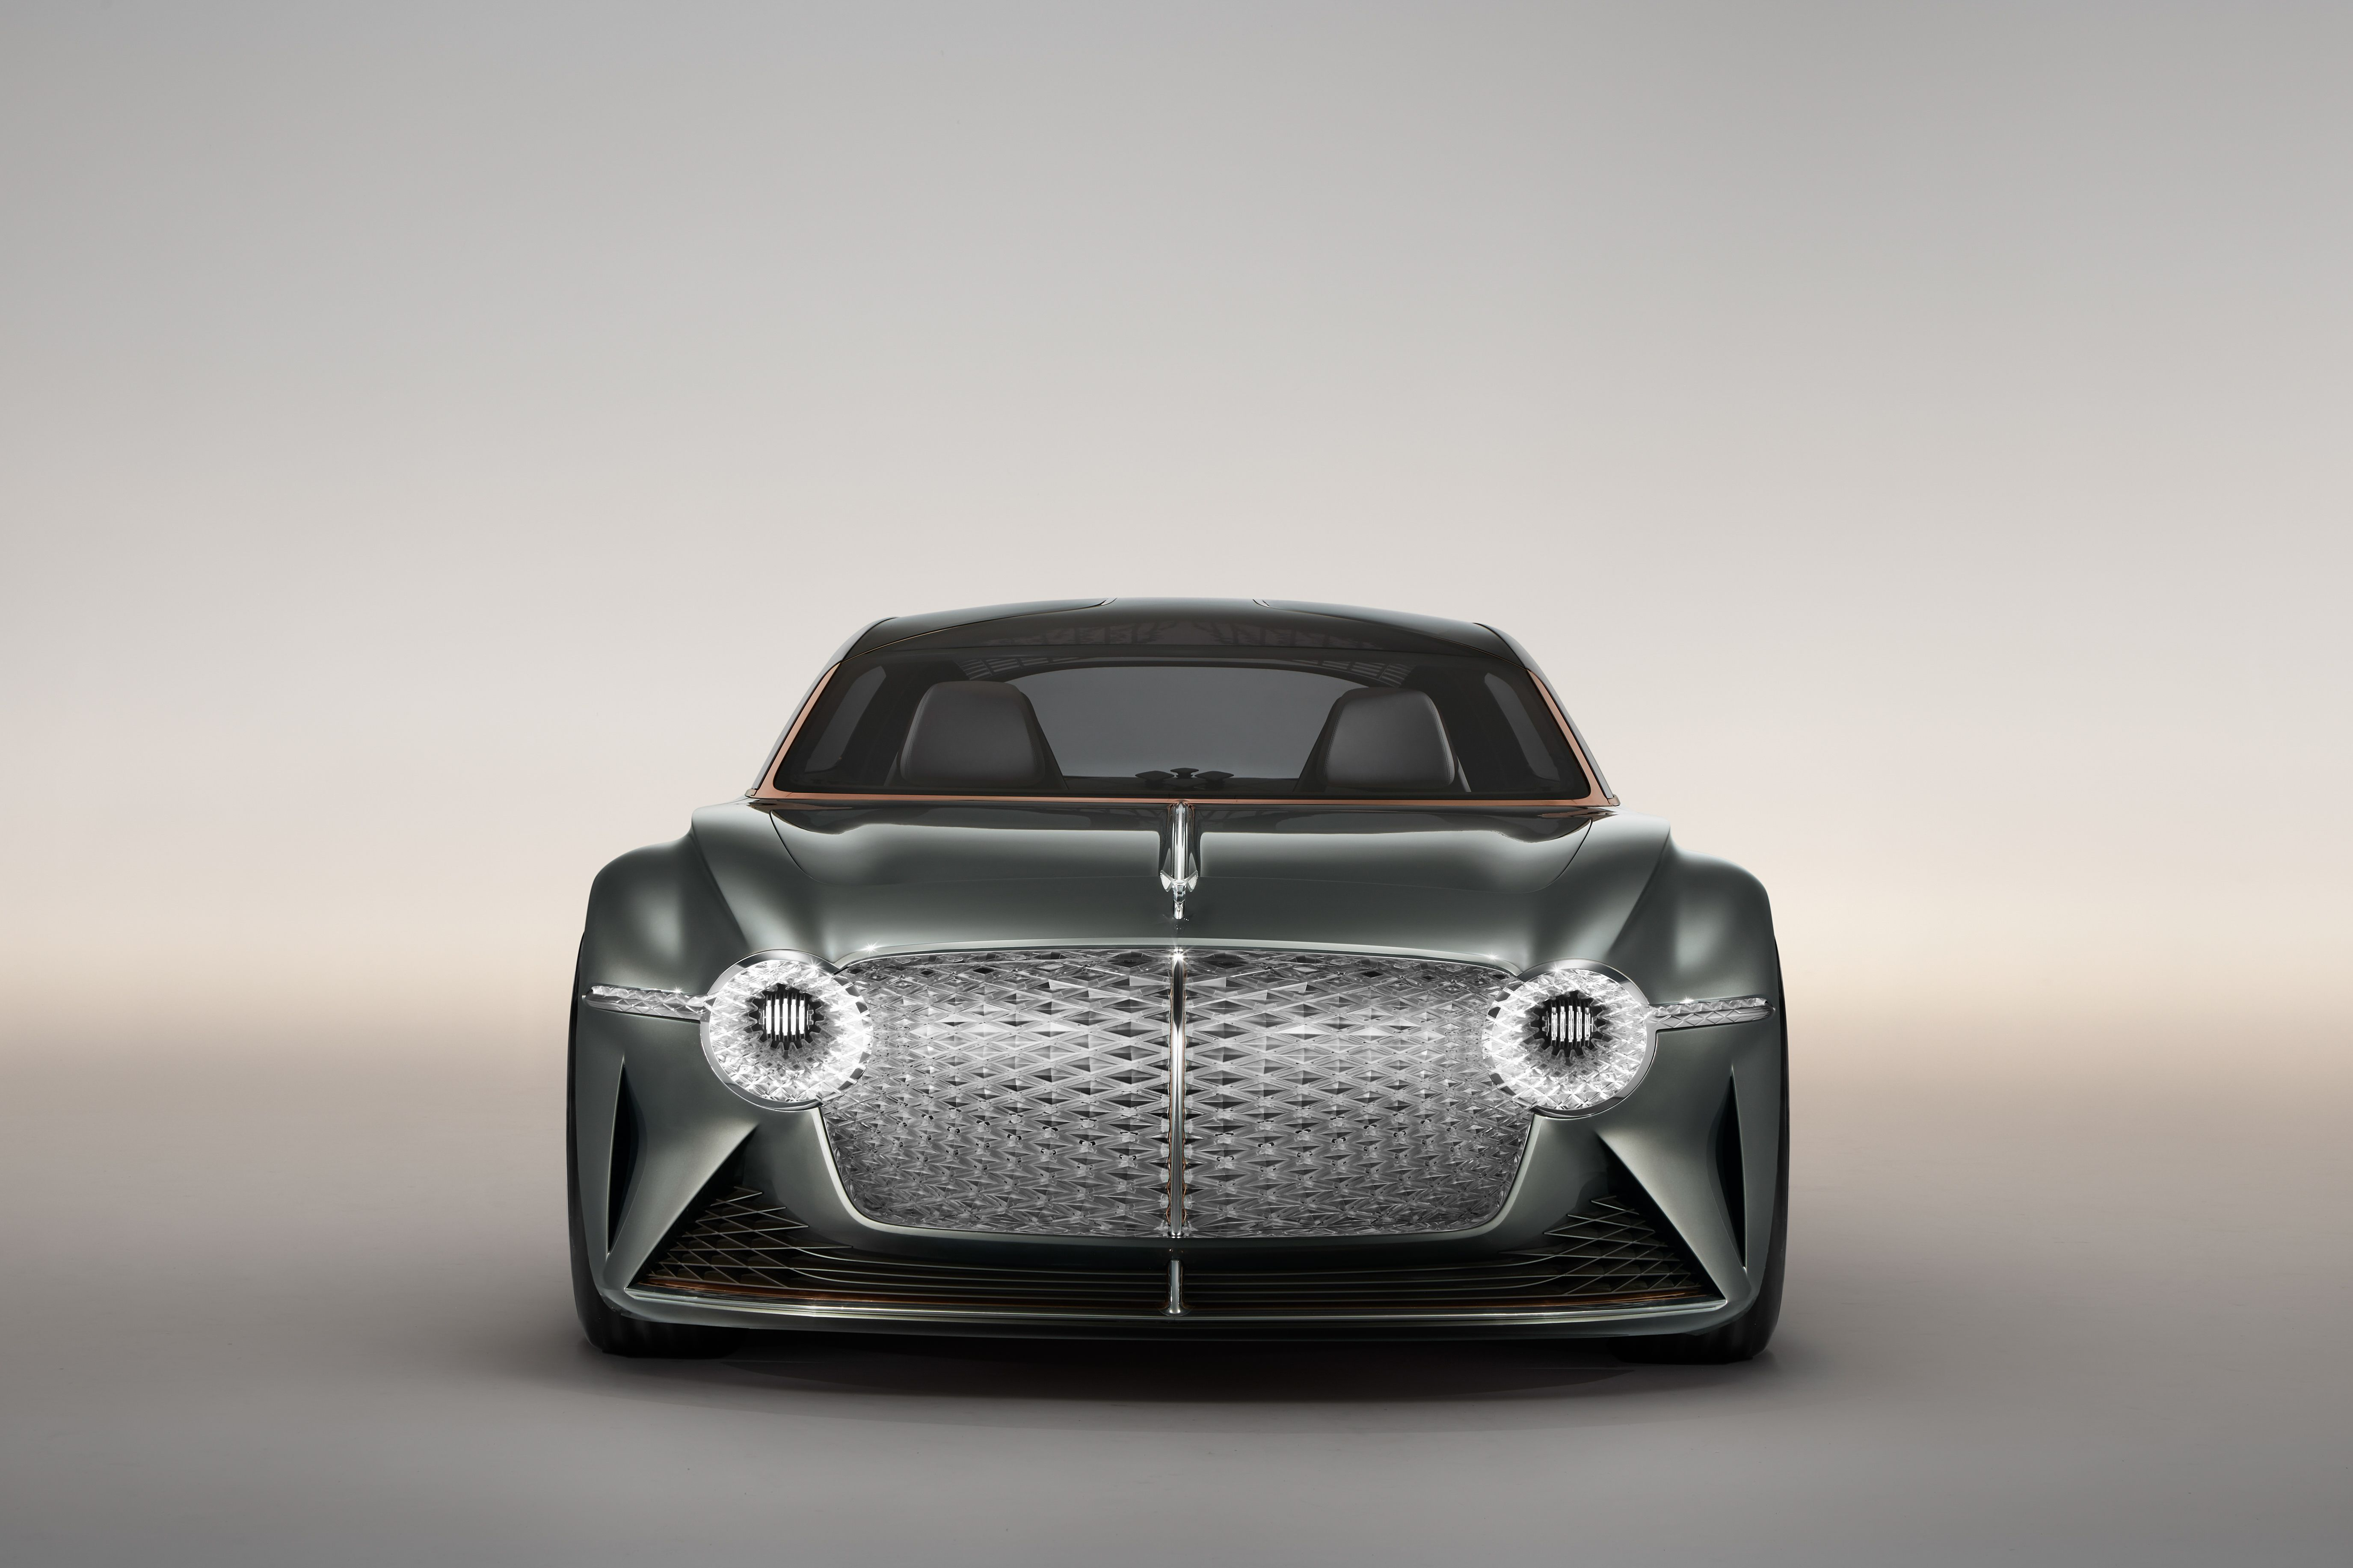 Bentley To Sell Only Evs Starting In 2030